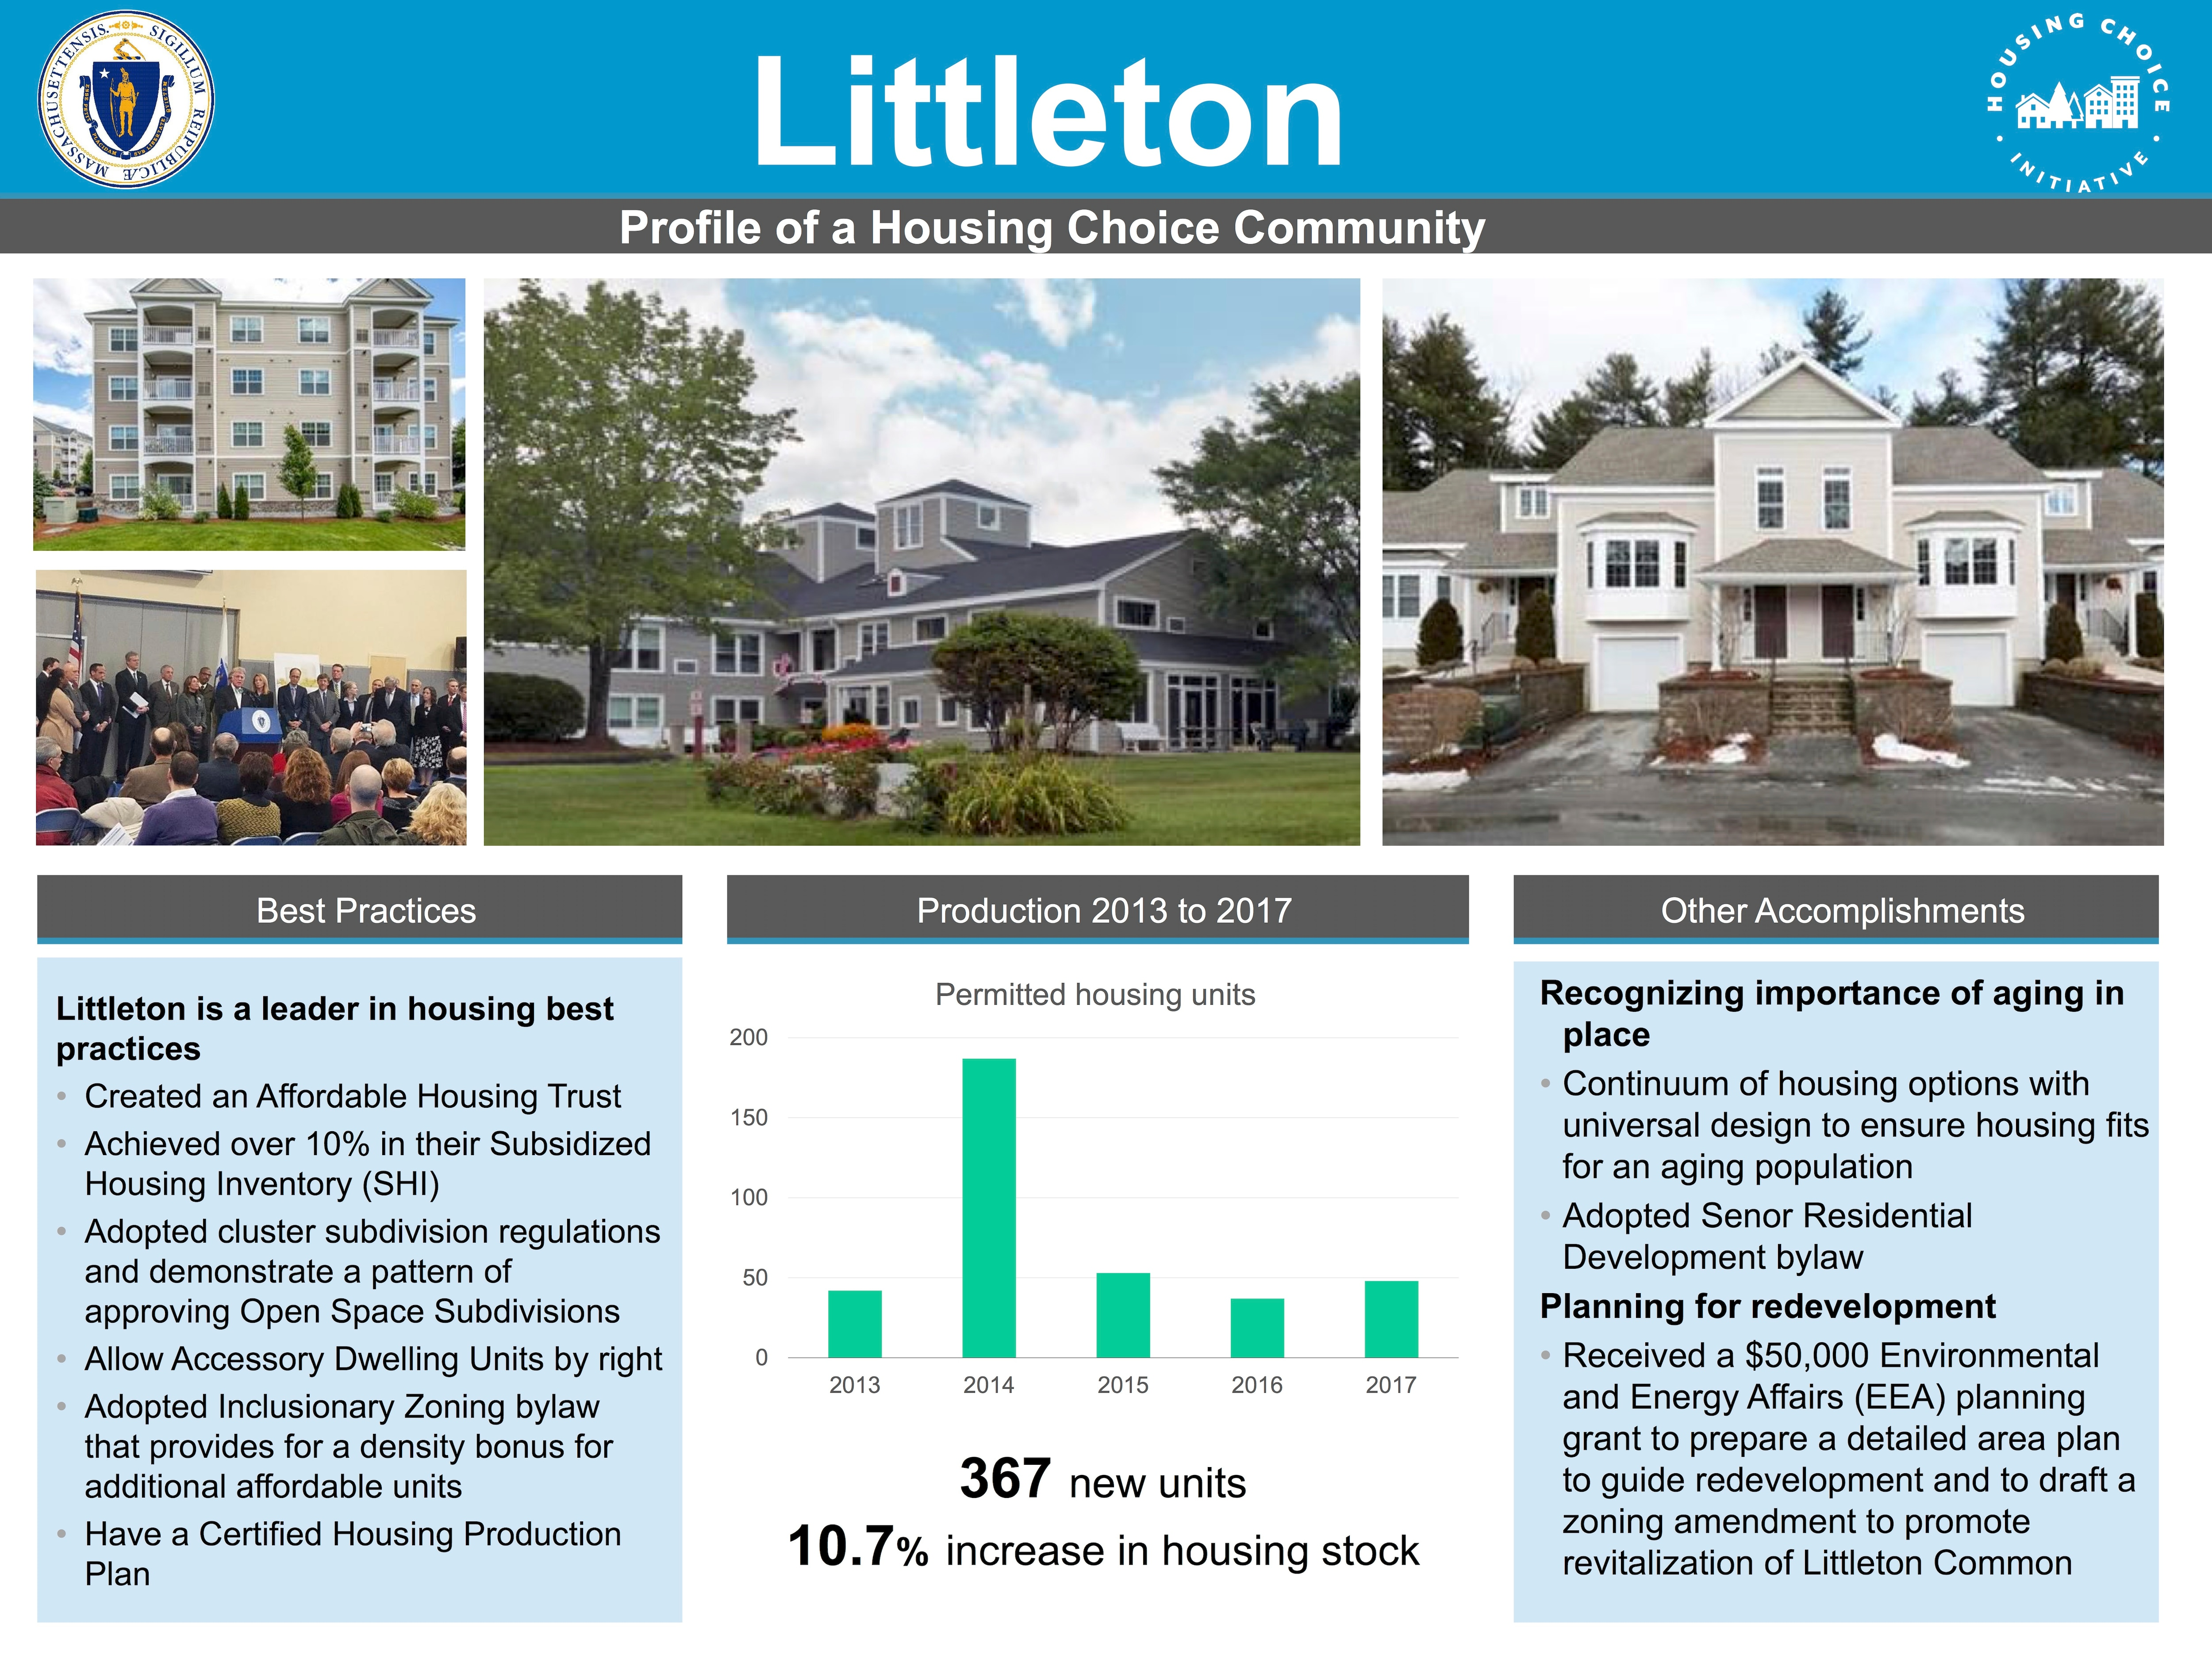 Profile of a Housing Choice Community - Littleton